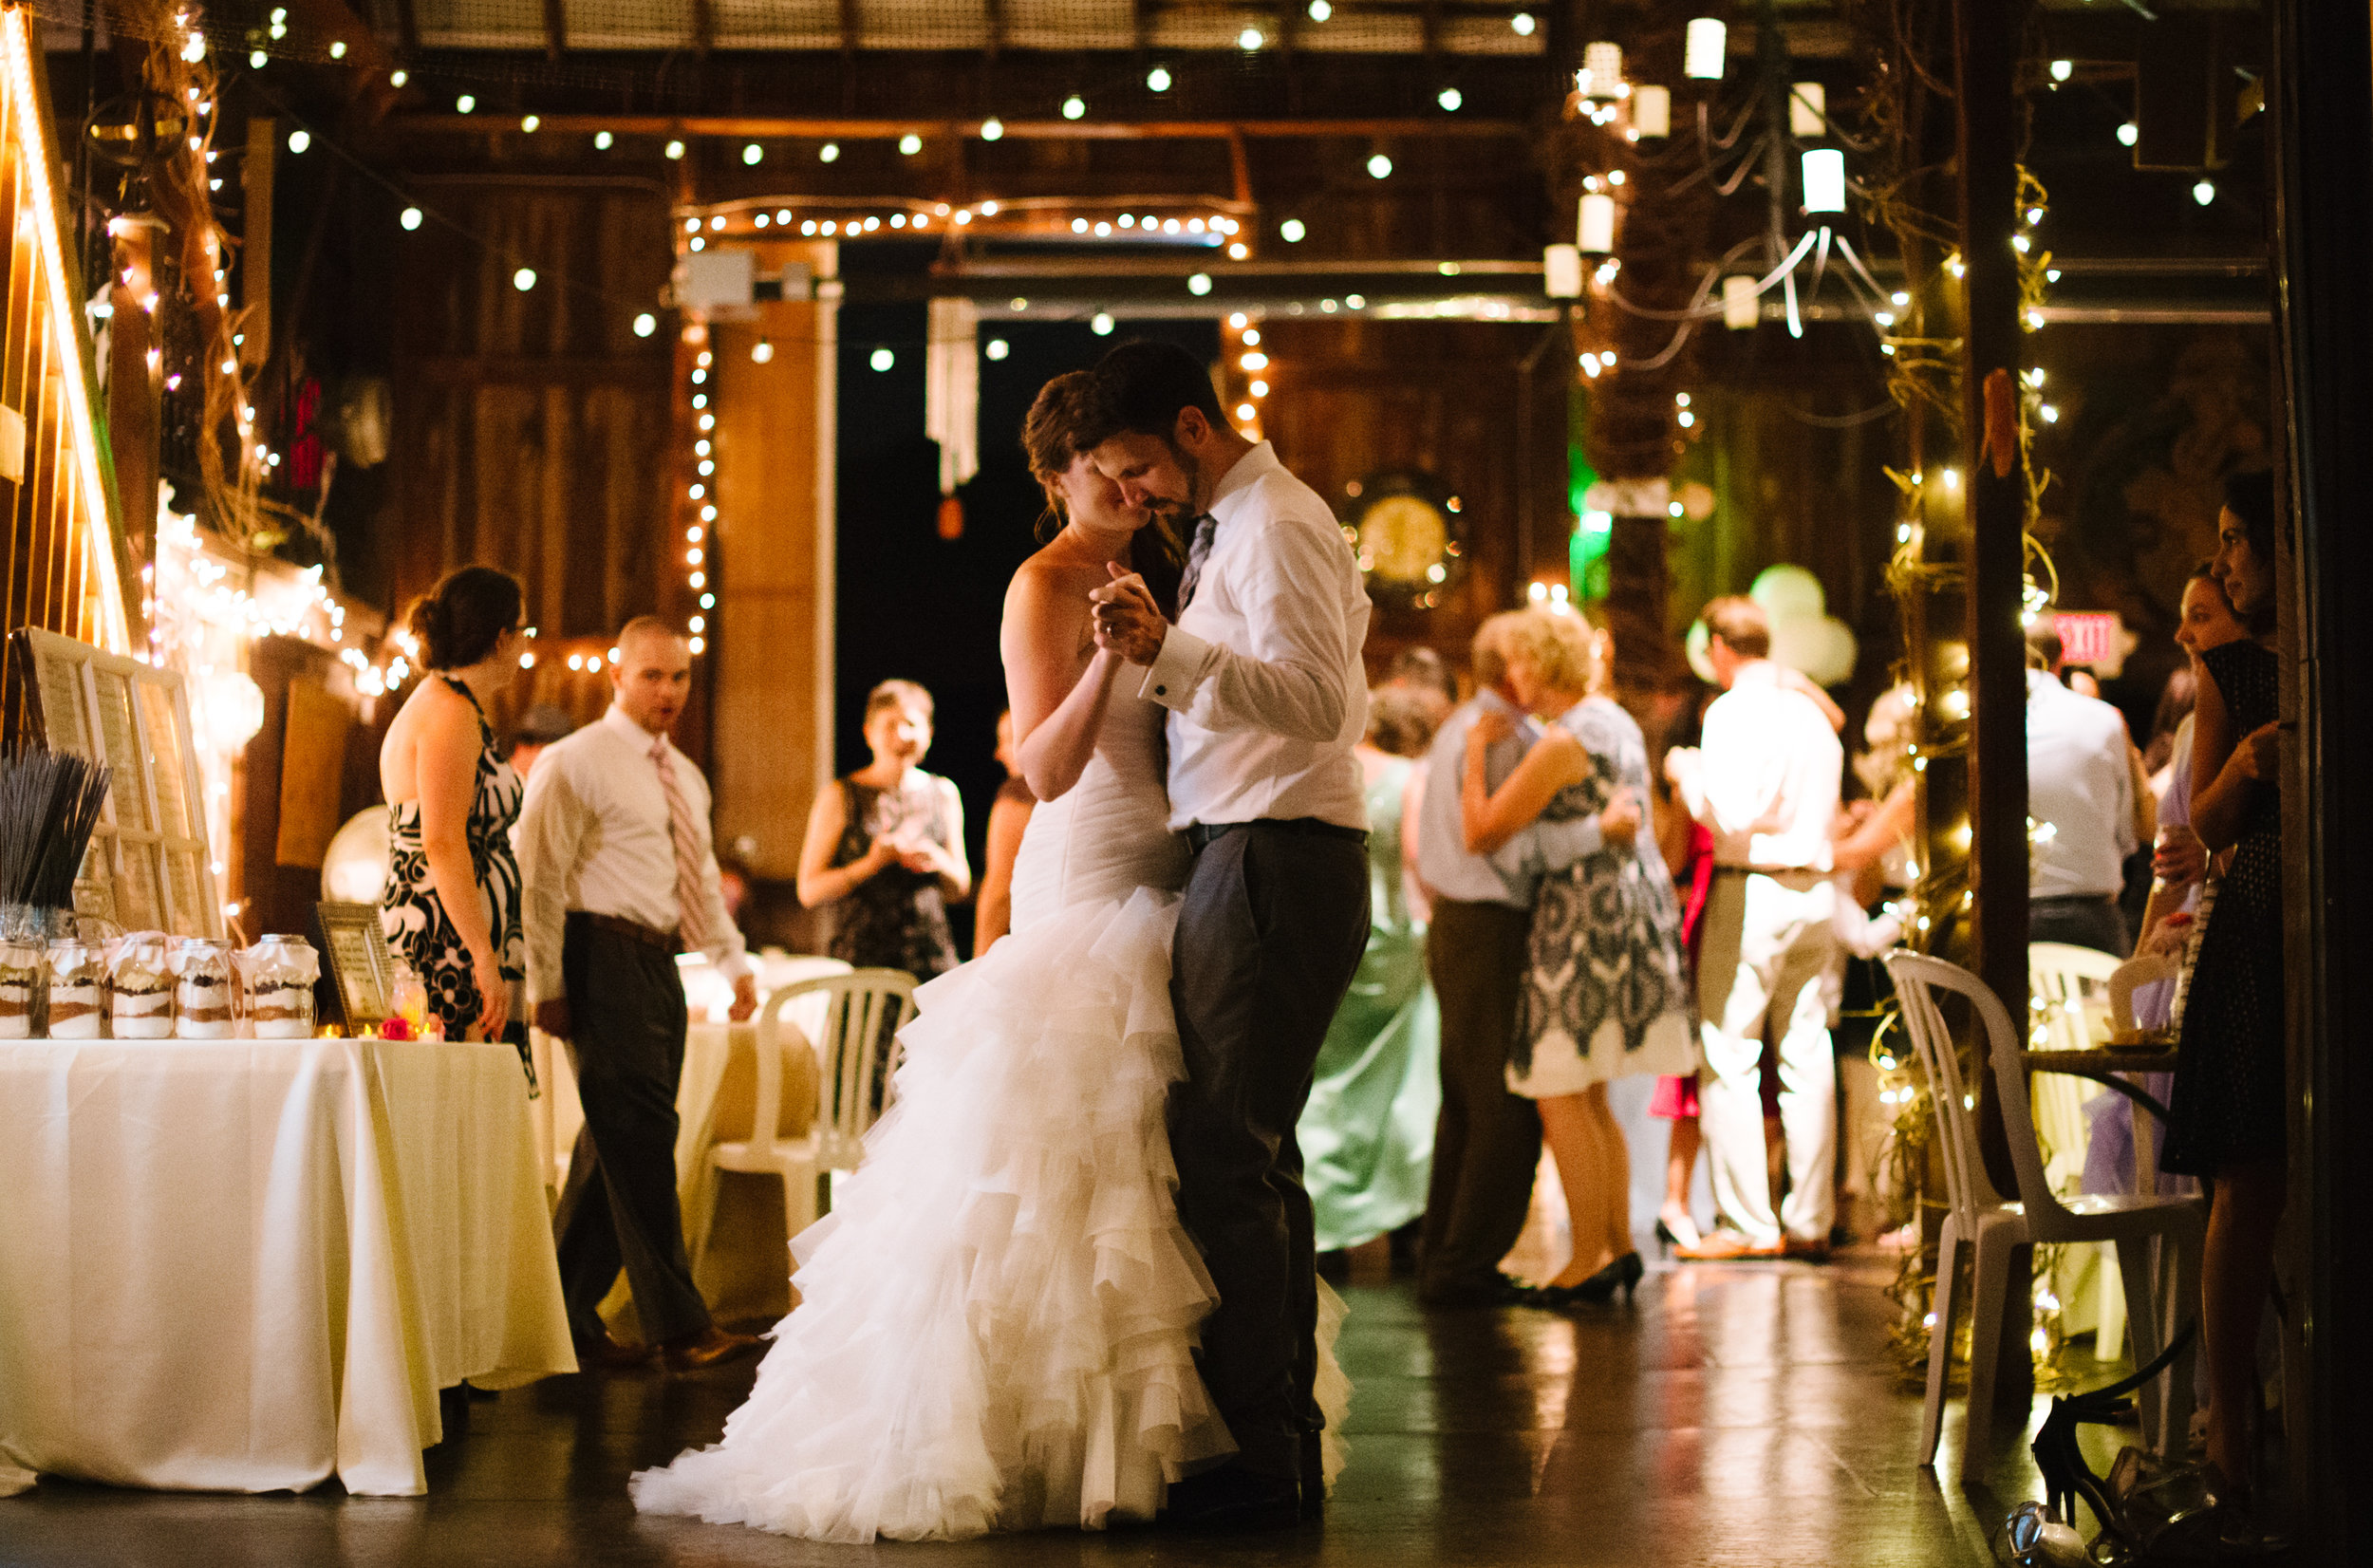 wedding-dance-bride-groom.jpg